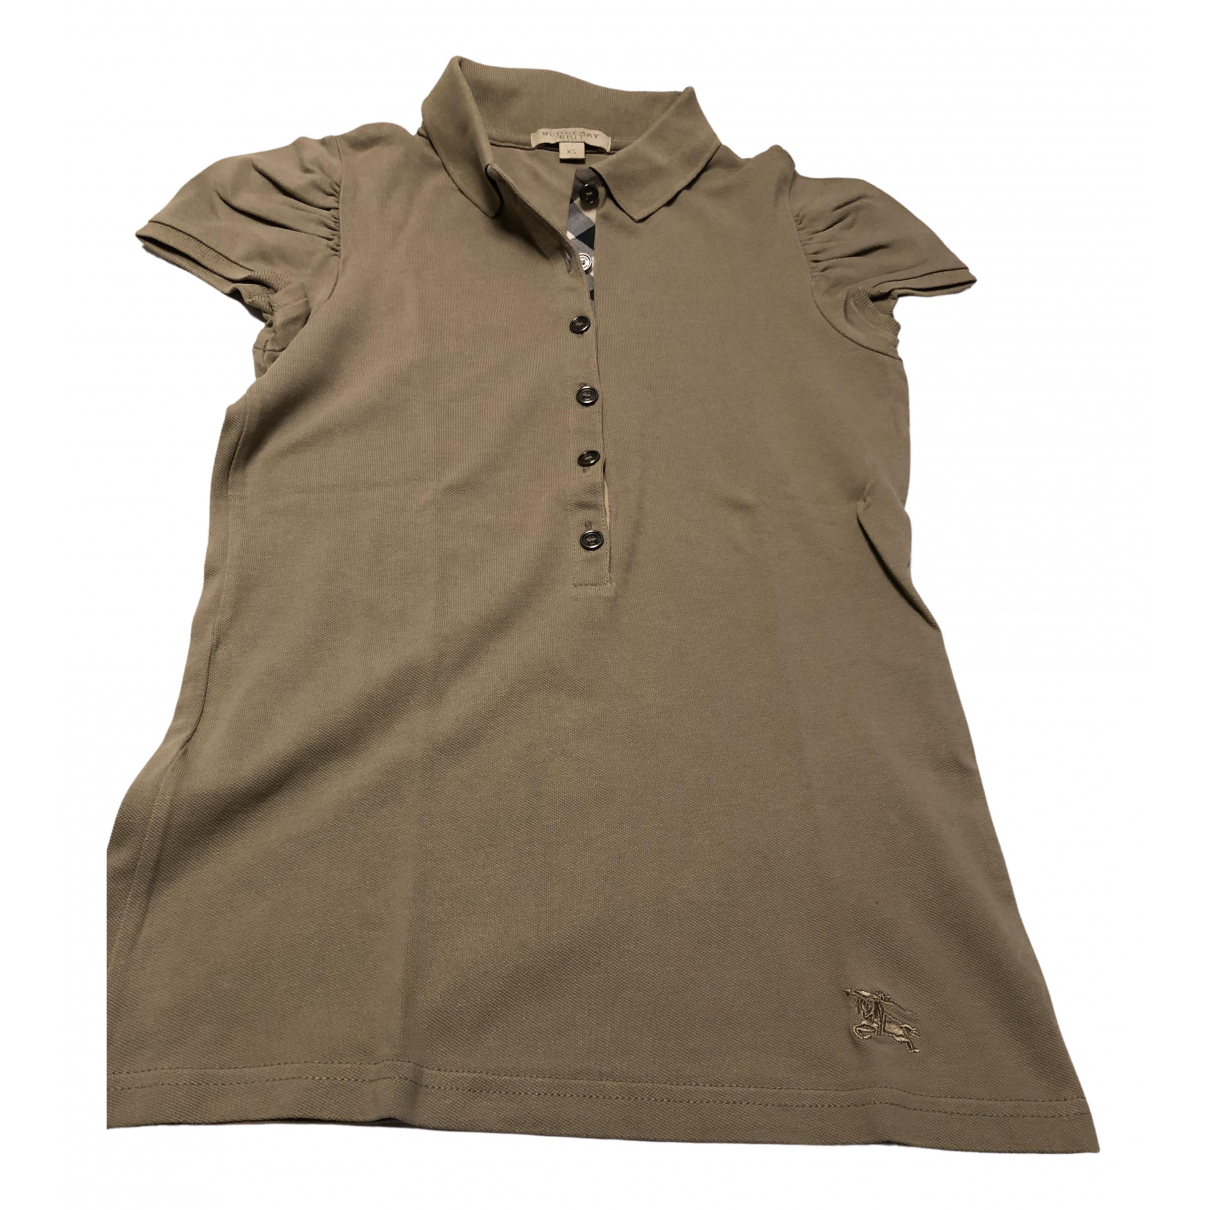 Burberry \N Beige Cotton  top for Women XS International